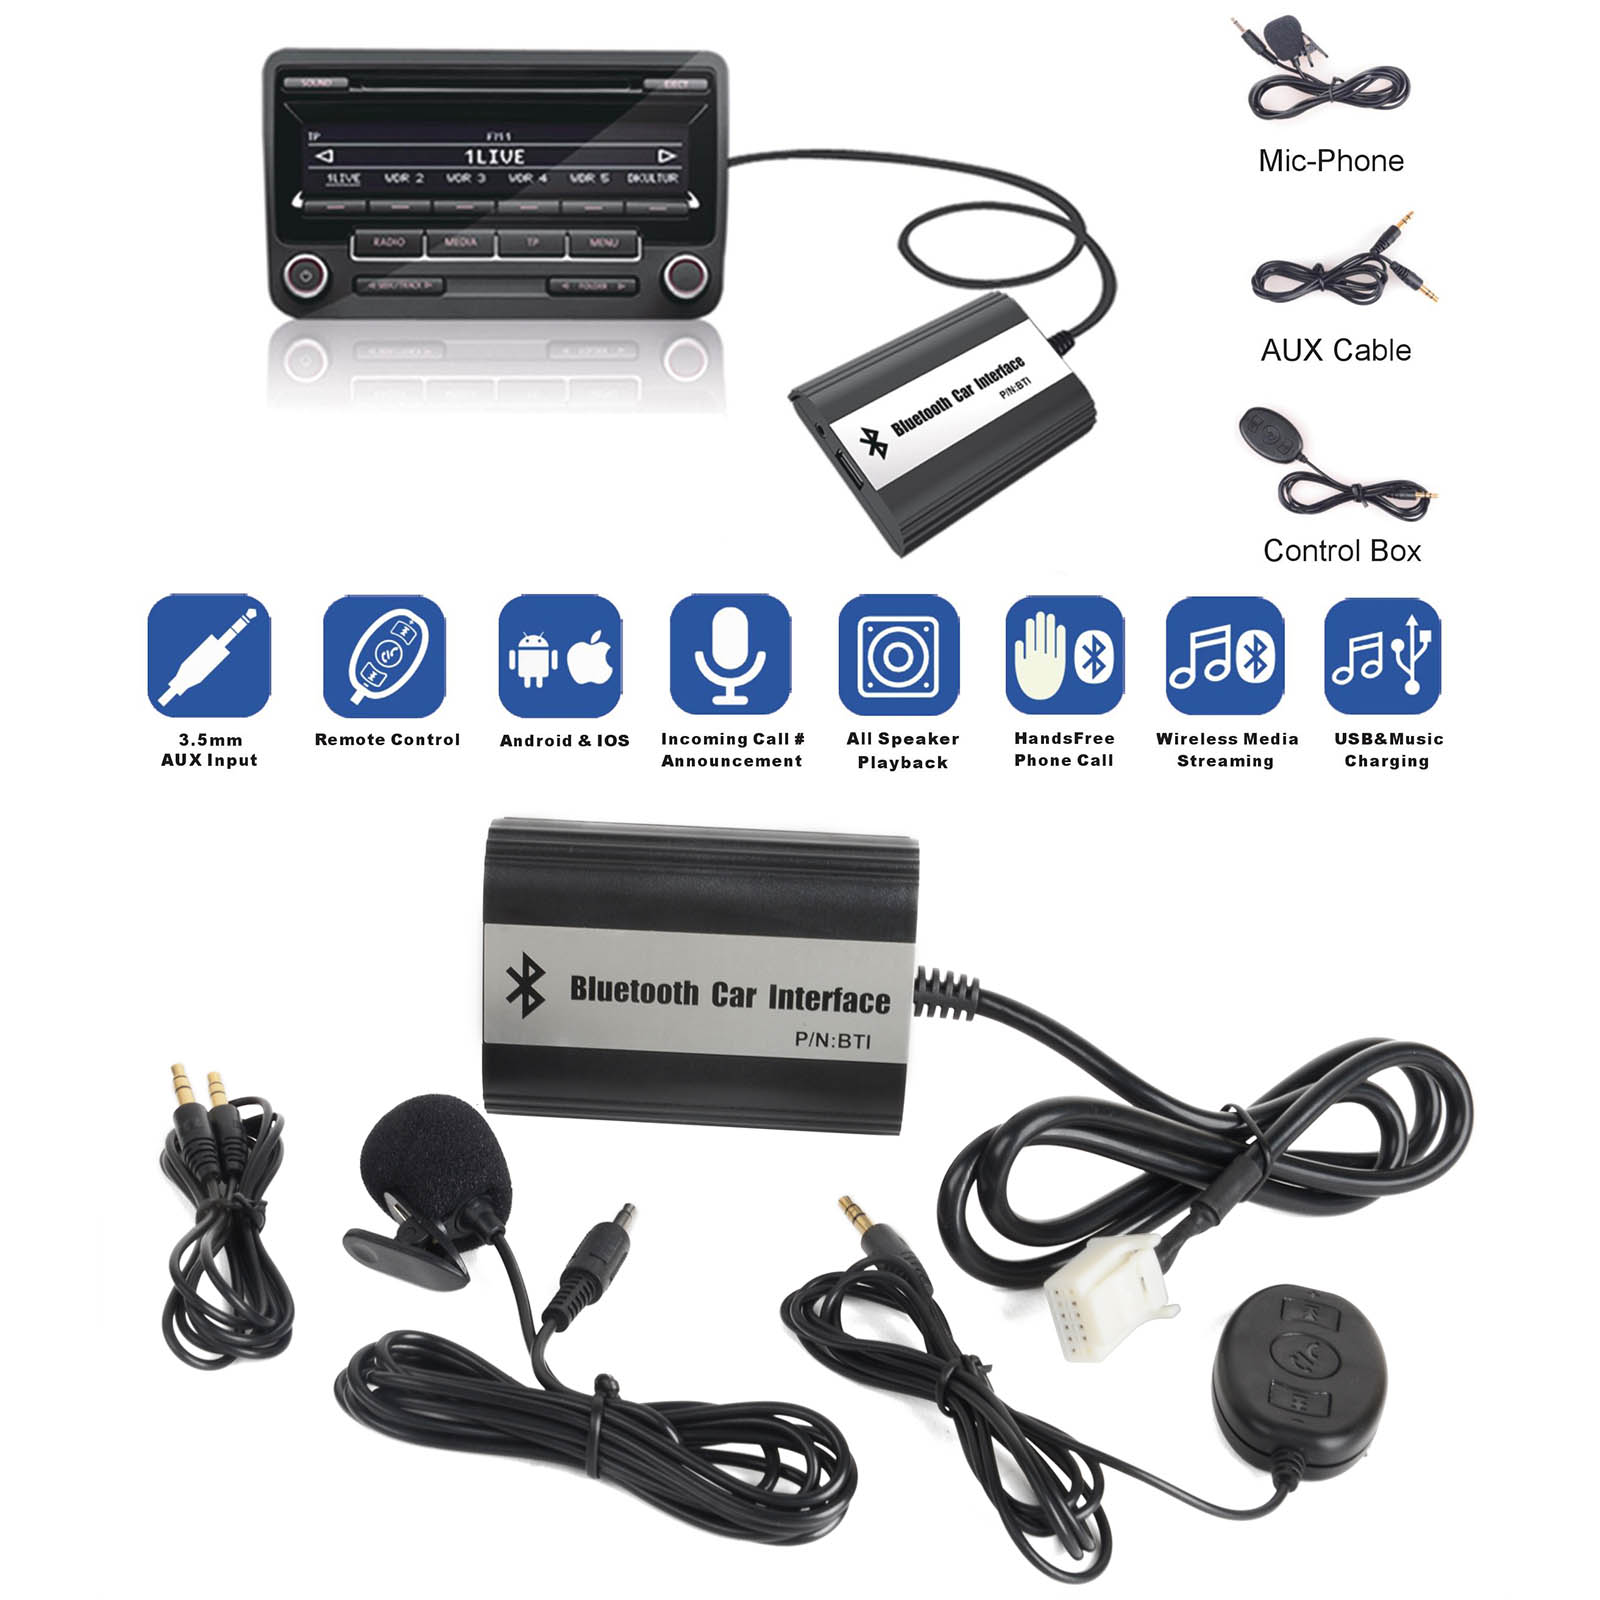 MAYITR 1Set Car Stereo Bluetooth Kits Hands-free Adapter USB AUX Interface for Toyota 2*6 with Car Electronics Accessories car usb sd aux adapter digital music changer mp3 converter for skoda octavia 2007 2011 fits select oem radios